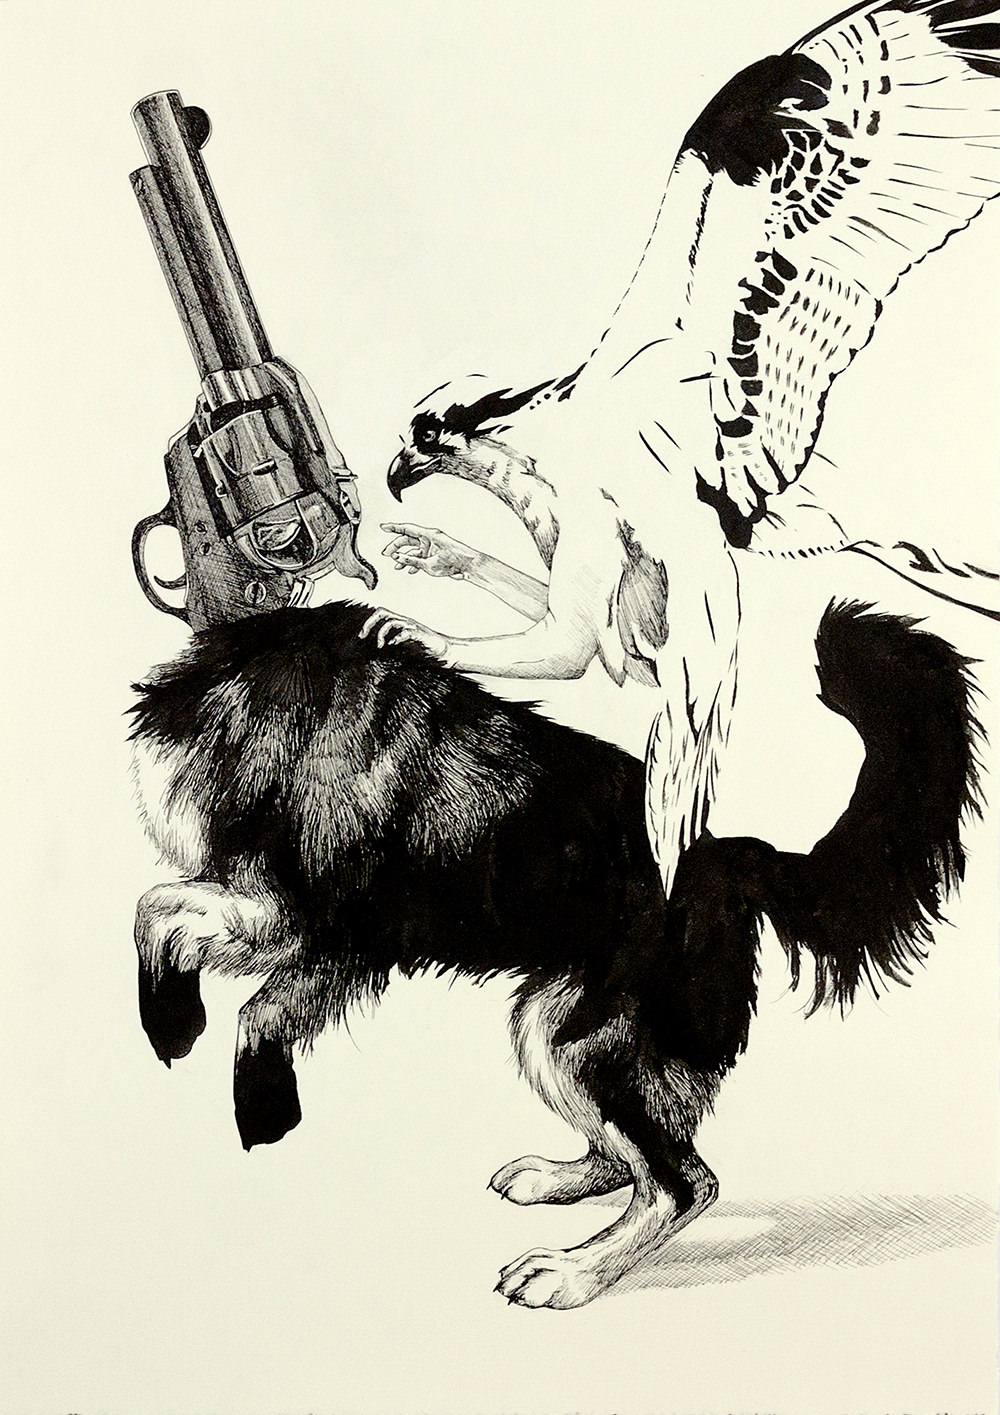 Trigger Finger, Ink Drawing by Jenie Gao